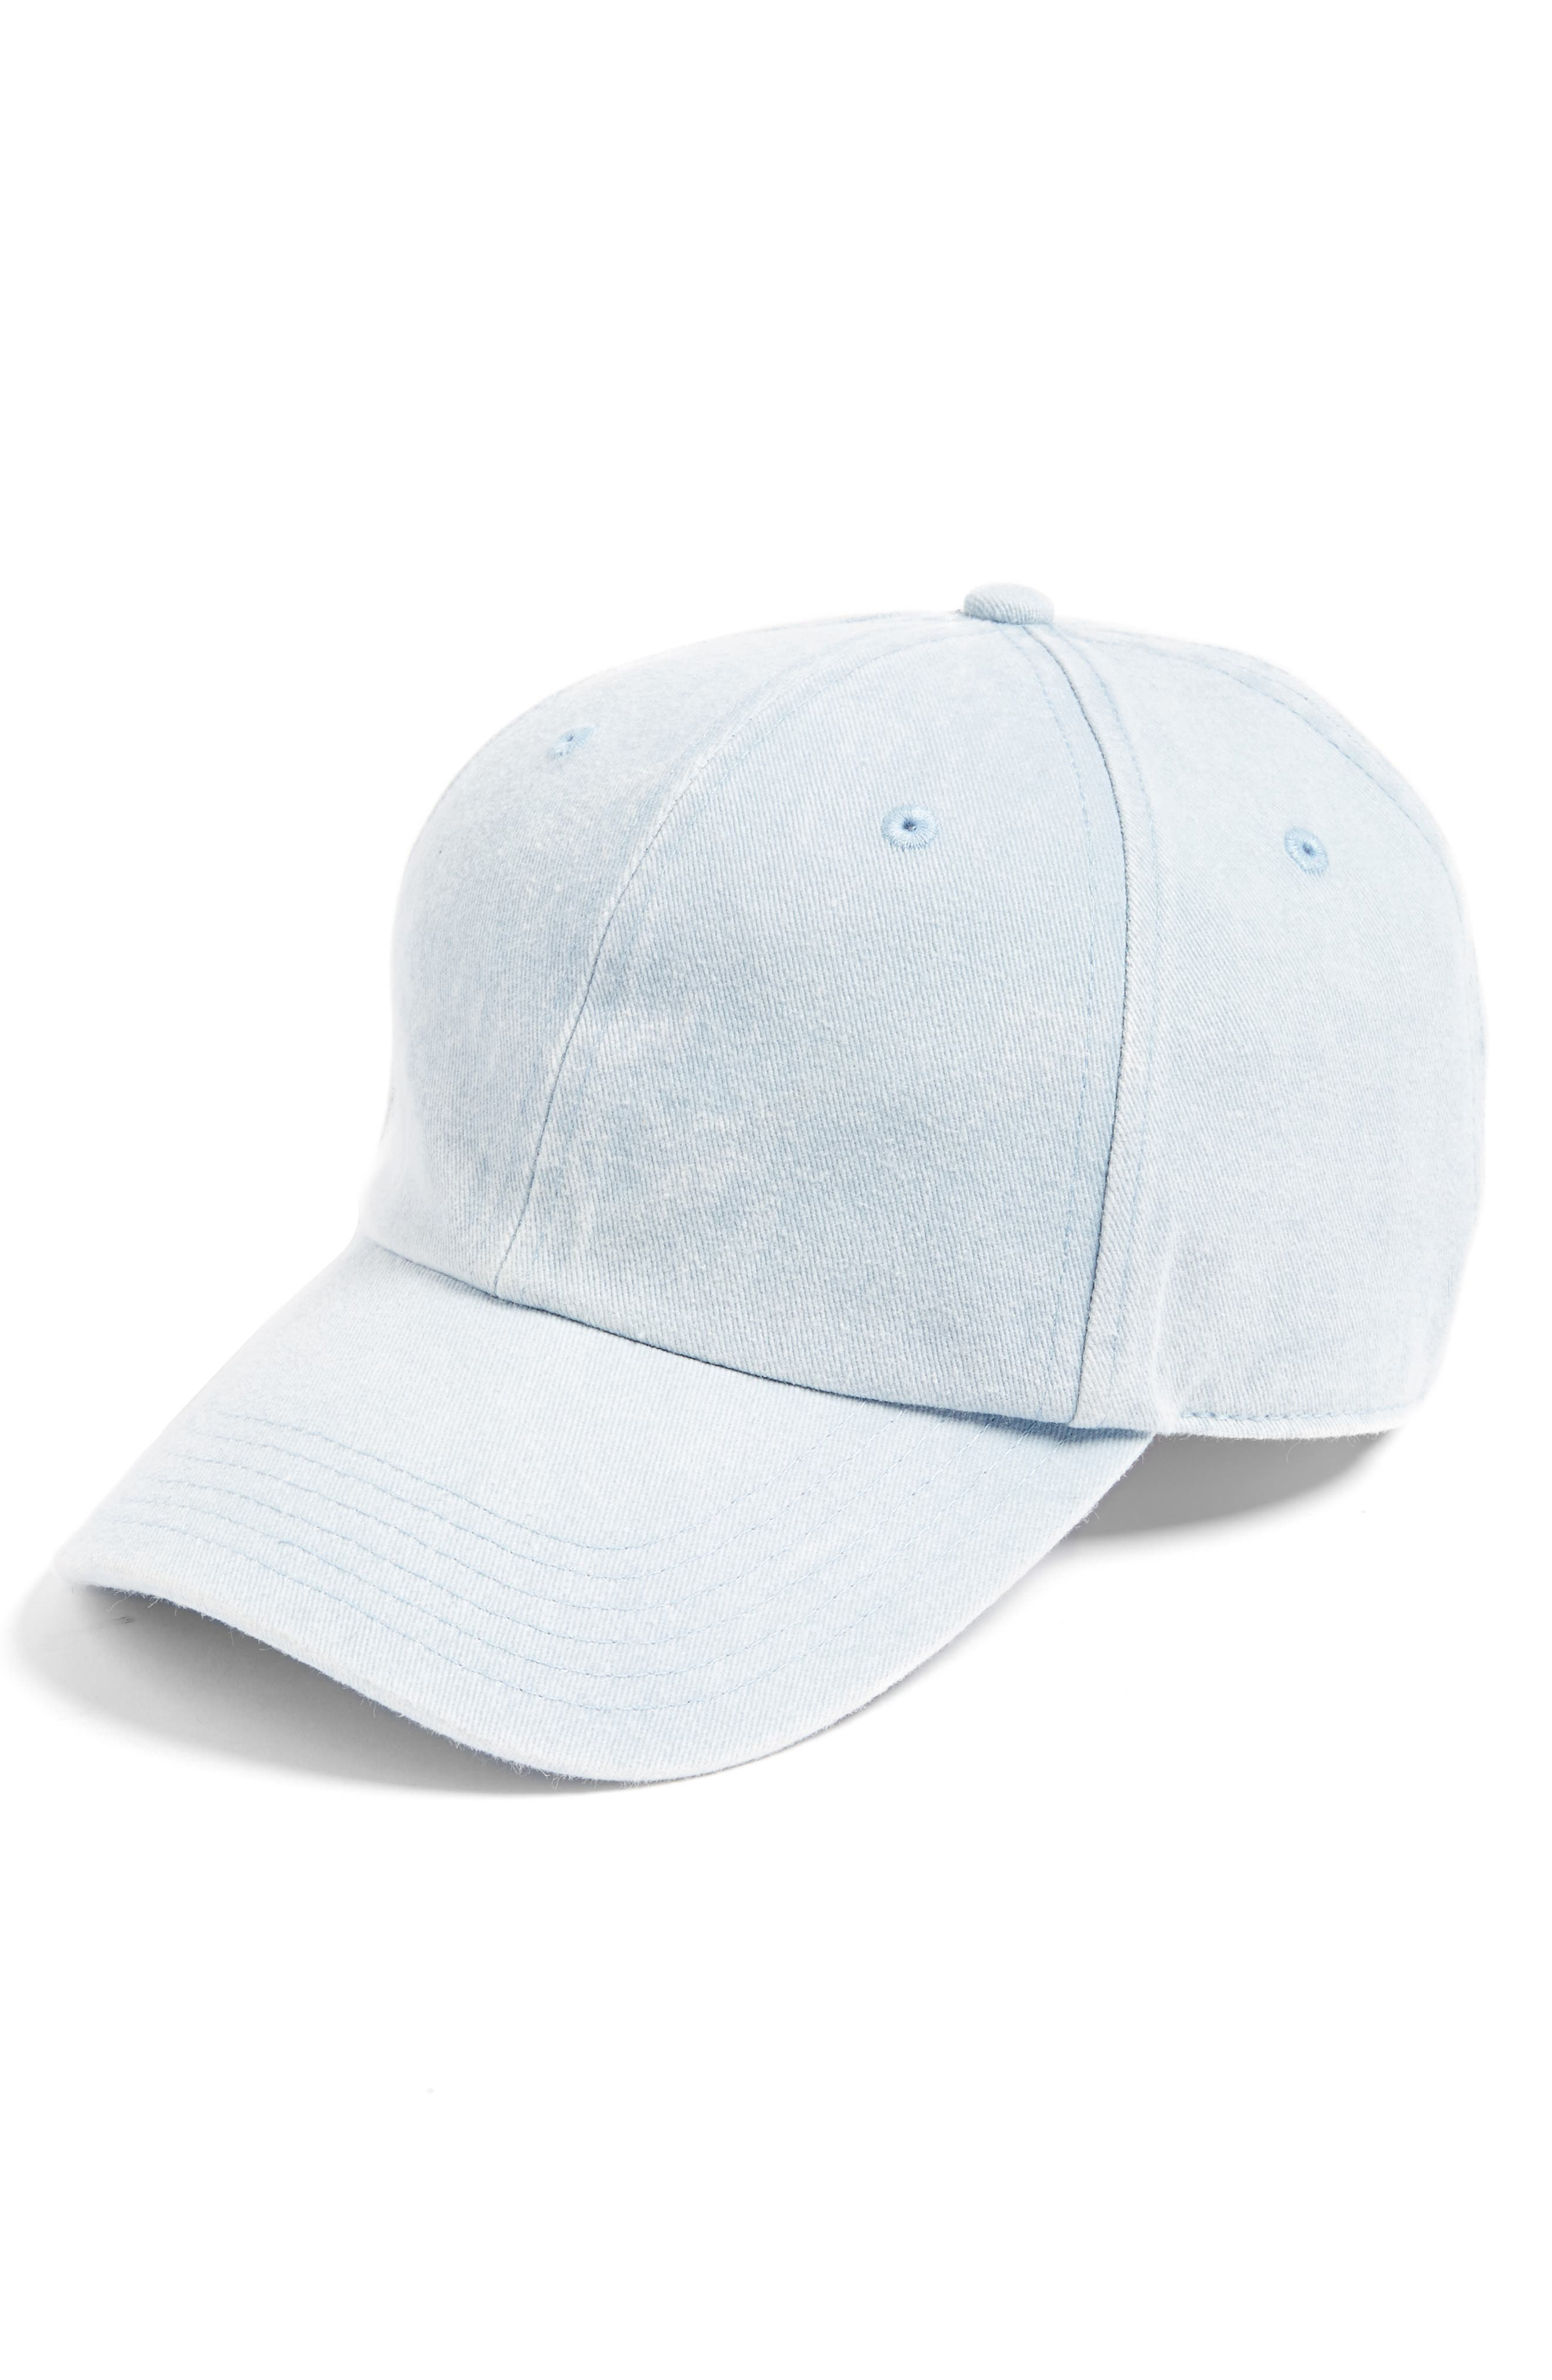 Canvas Baseball Cap,                             Main thumbnail 1, color,                             CHAMBRAY WASHED